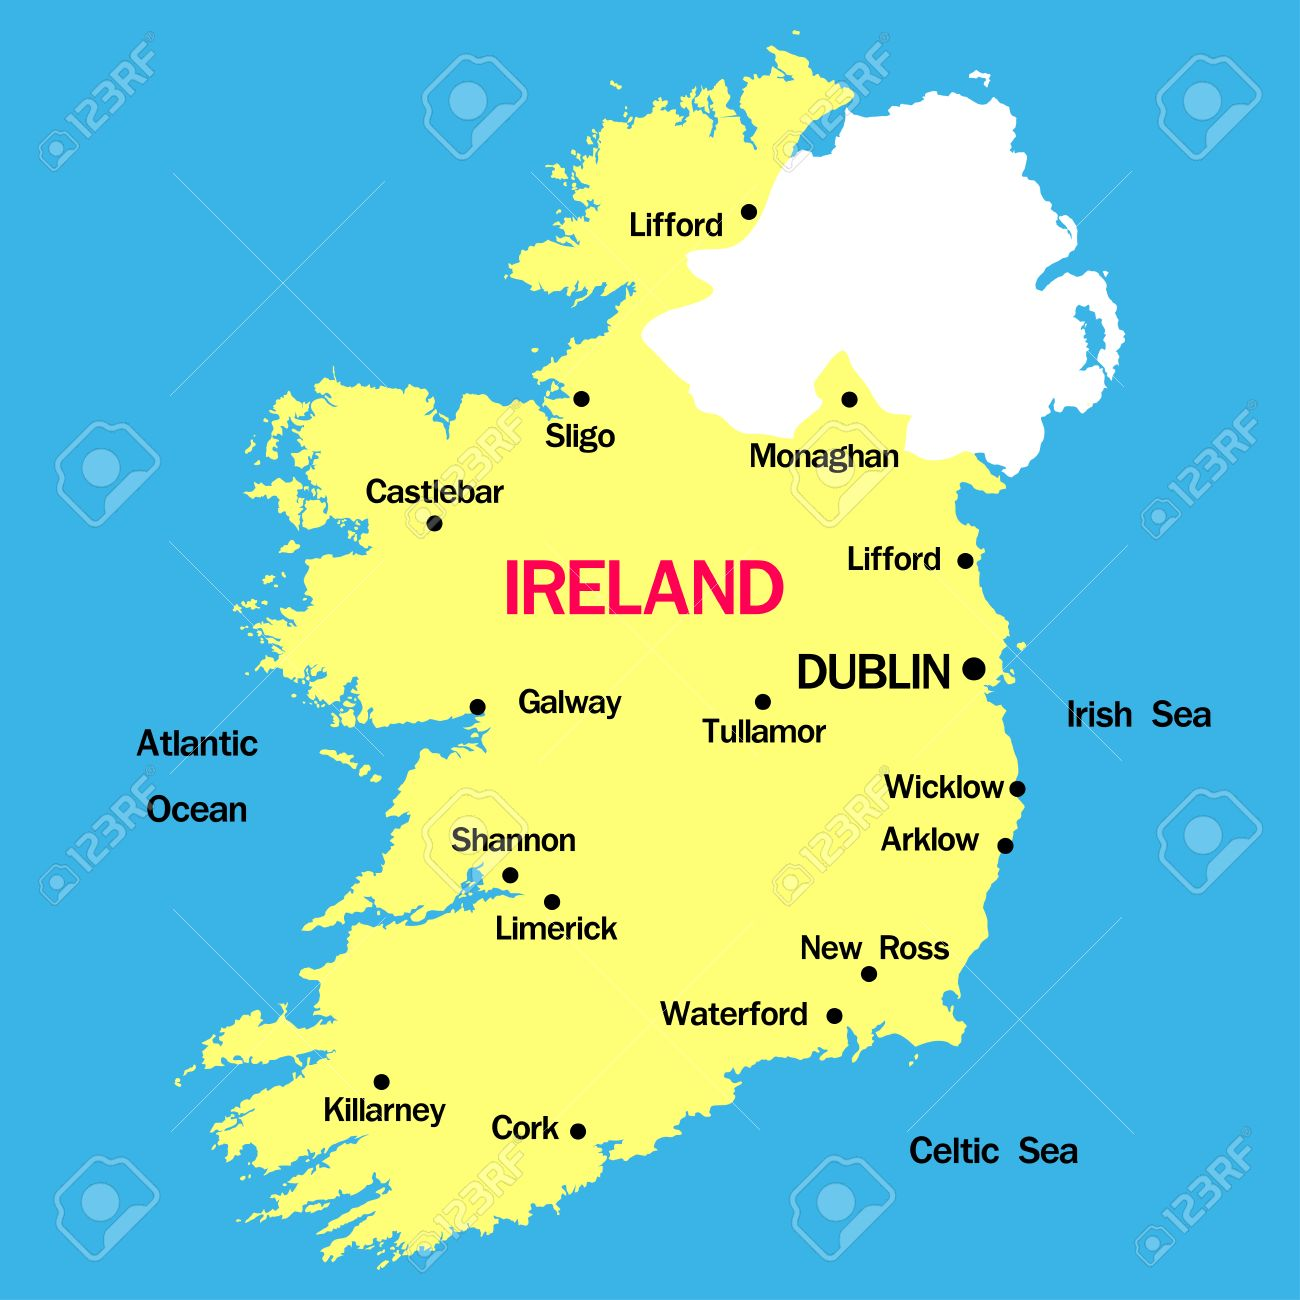 Ireland Map With Cities Vector Map Of Ireland With Cities Royalty Free Cliparts, Vectors